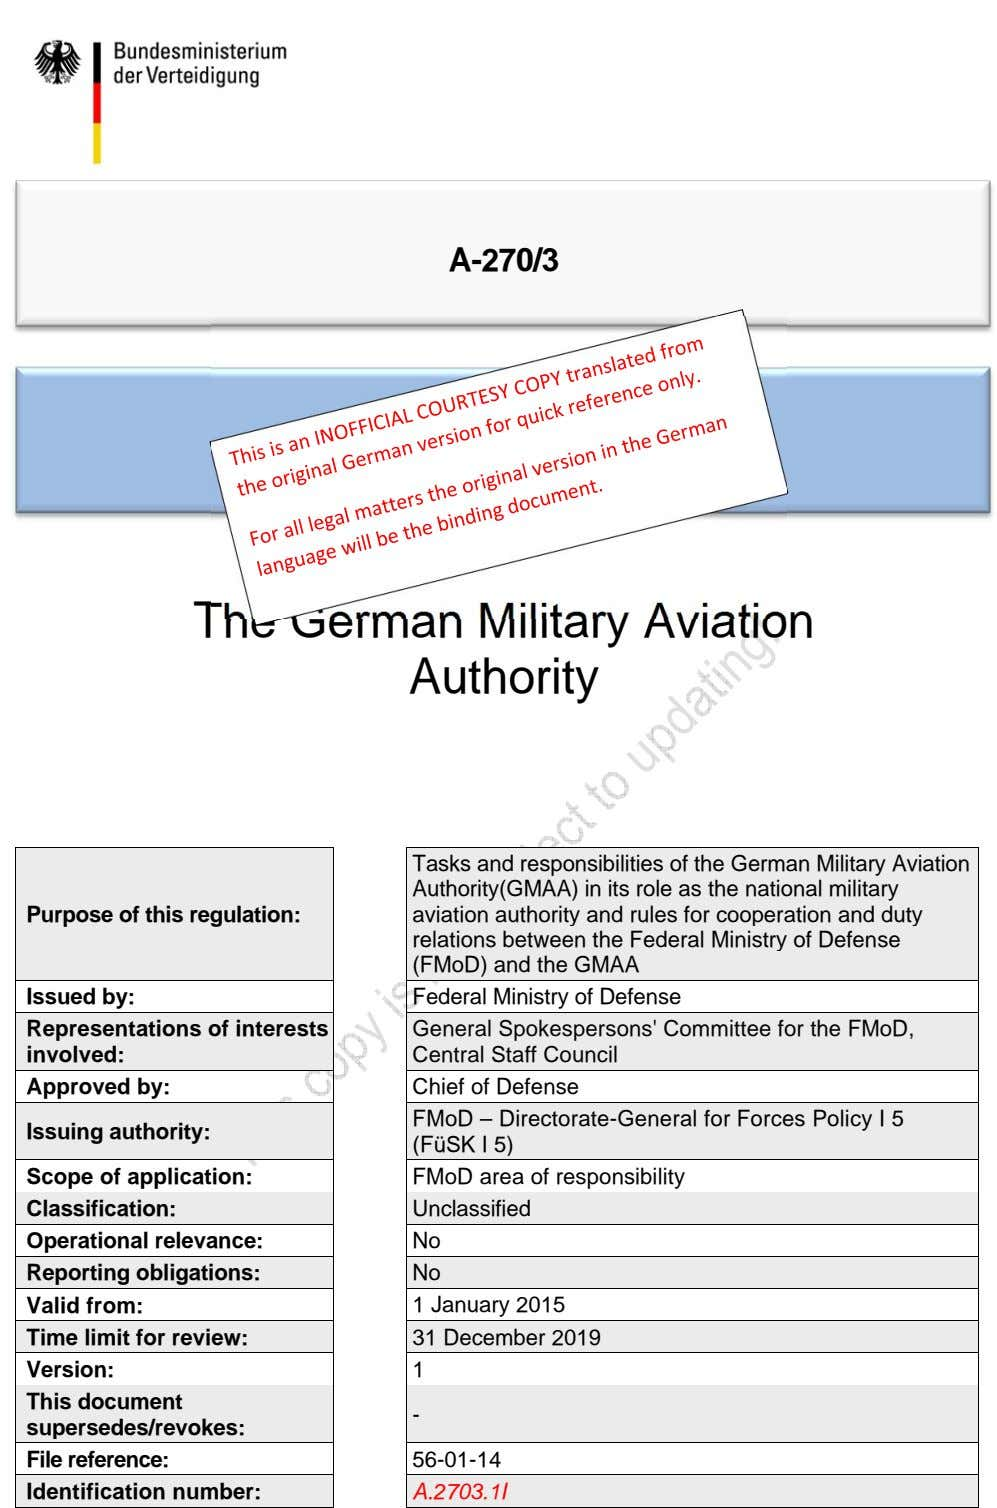 A-270/3 General Publication The German Military Aviation Authority Purpose of this regulation: Tasks and